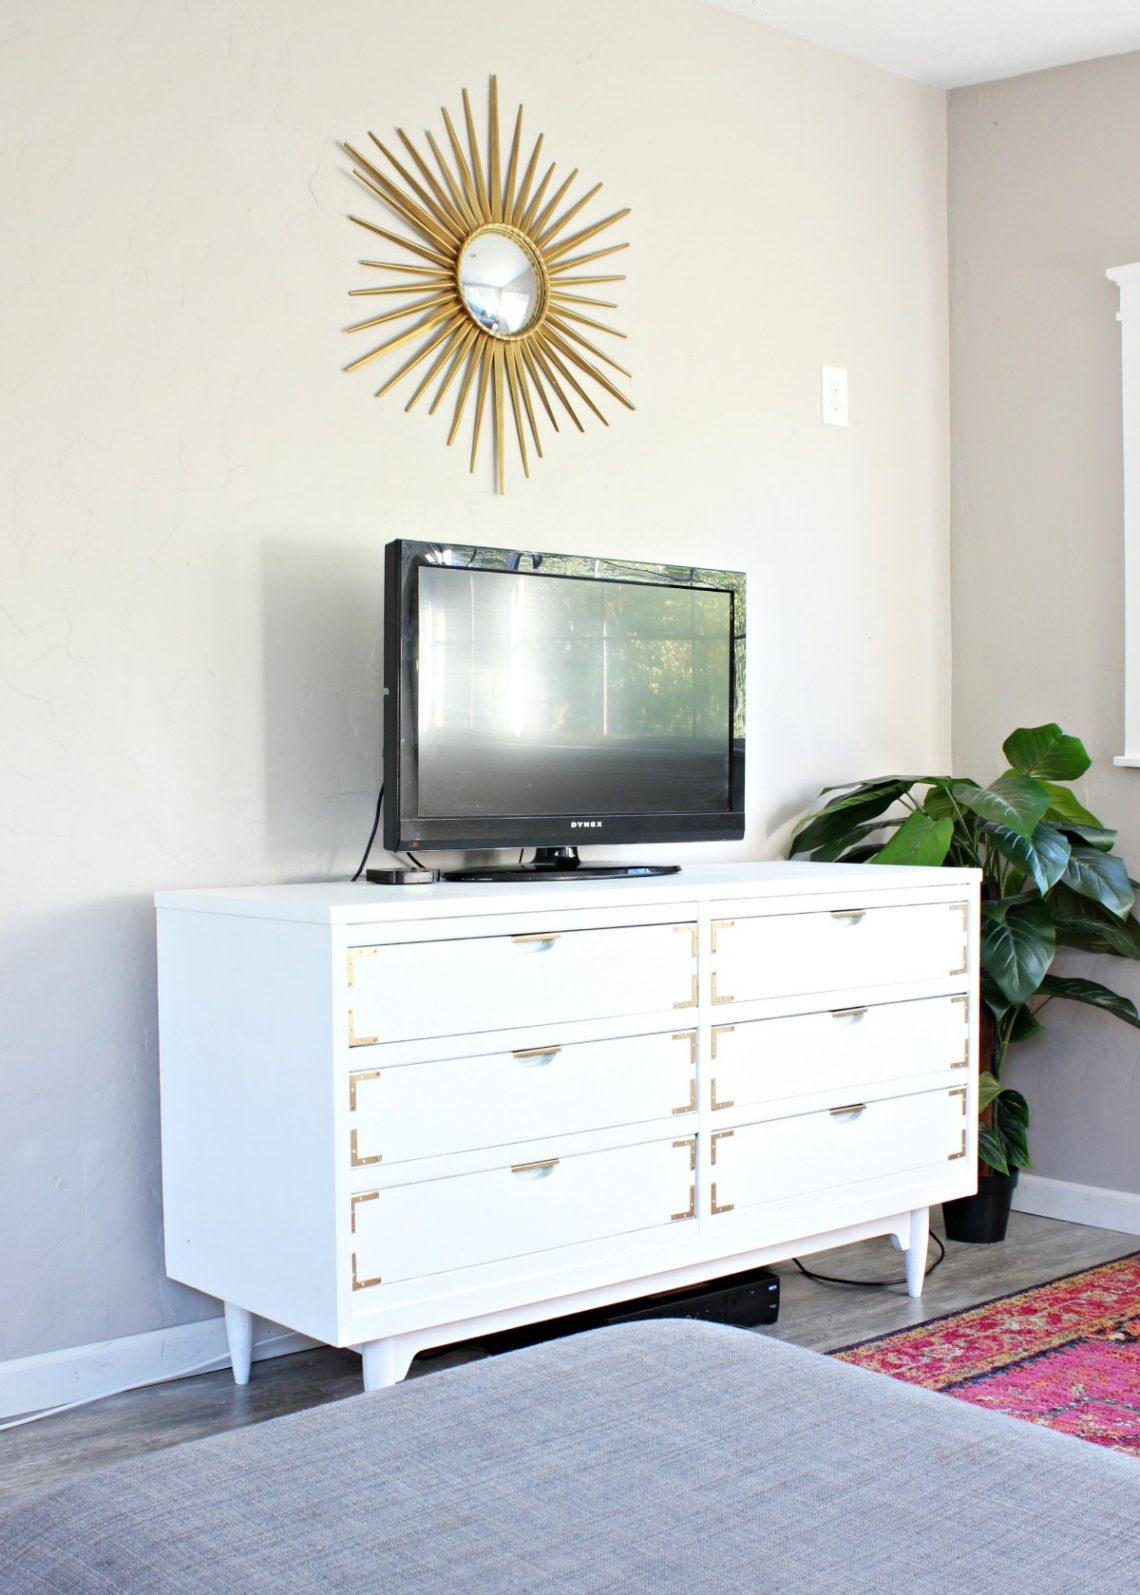 how to paint a dresser inside the house - How To Paint The Inside Of A House